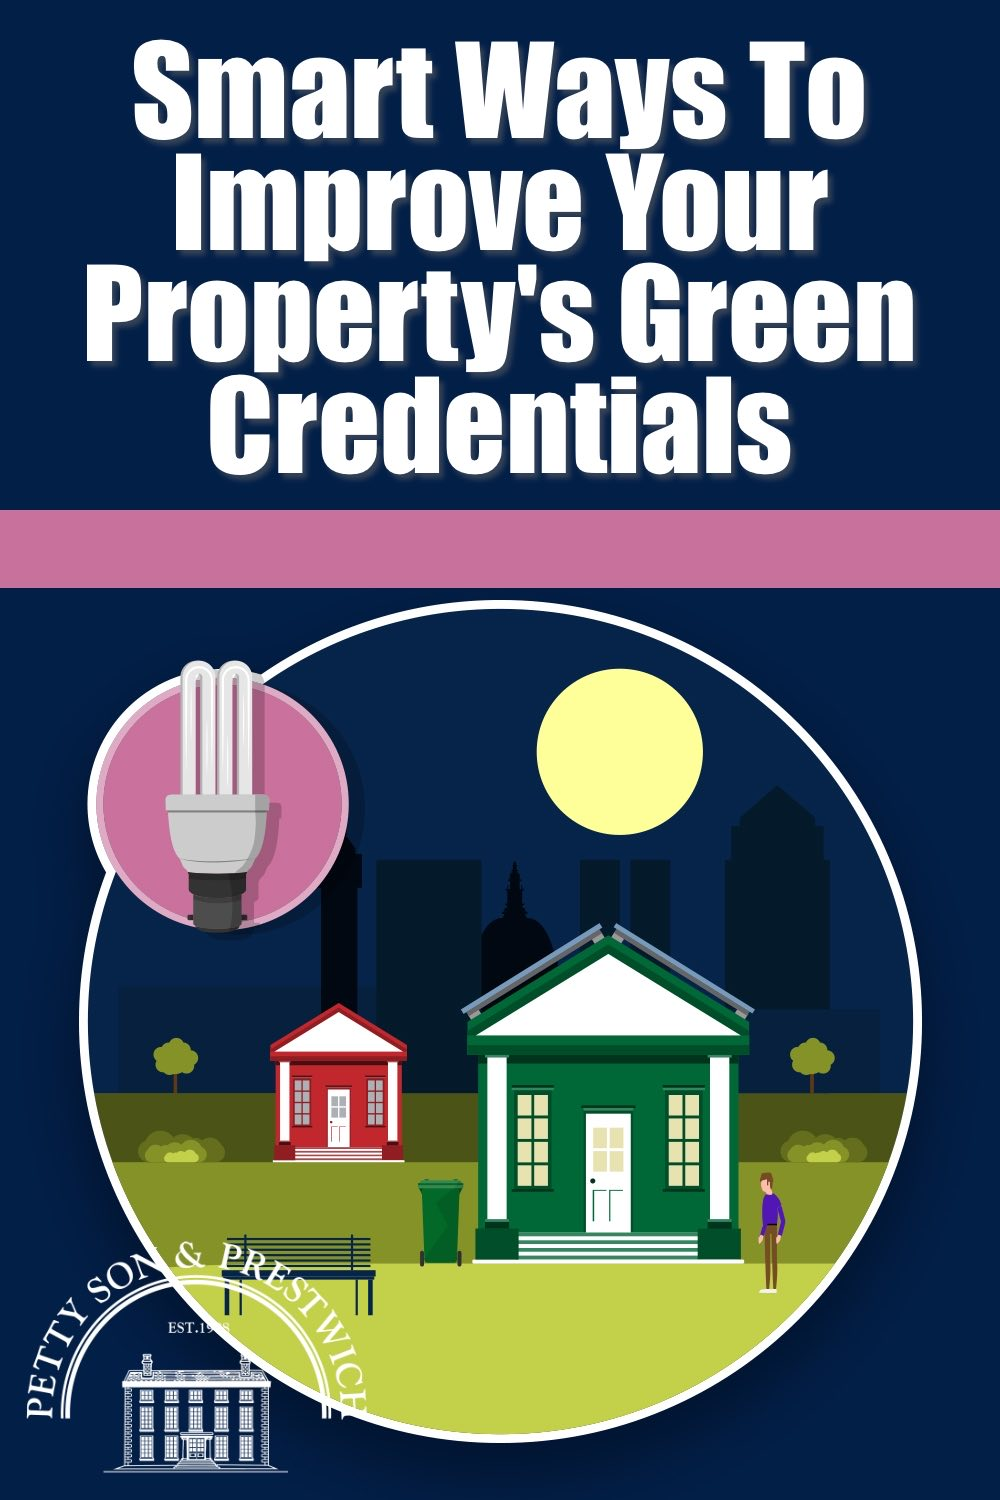 how to Improve Your Property Green Credentials